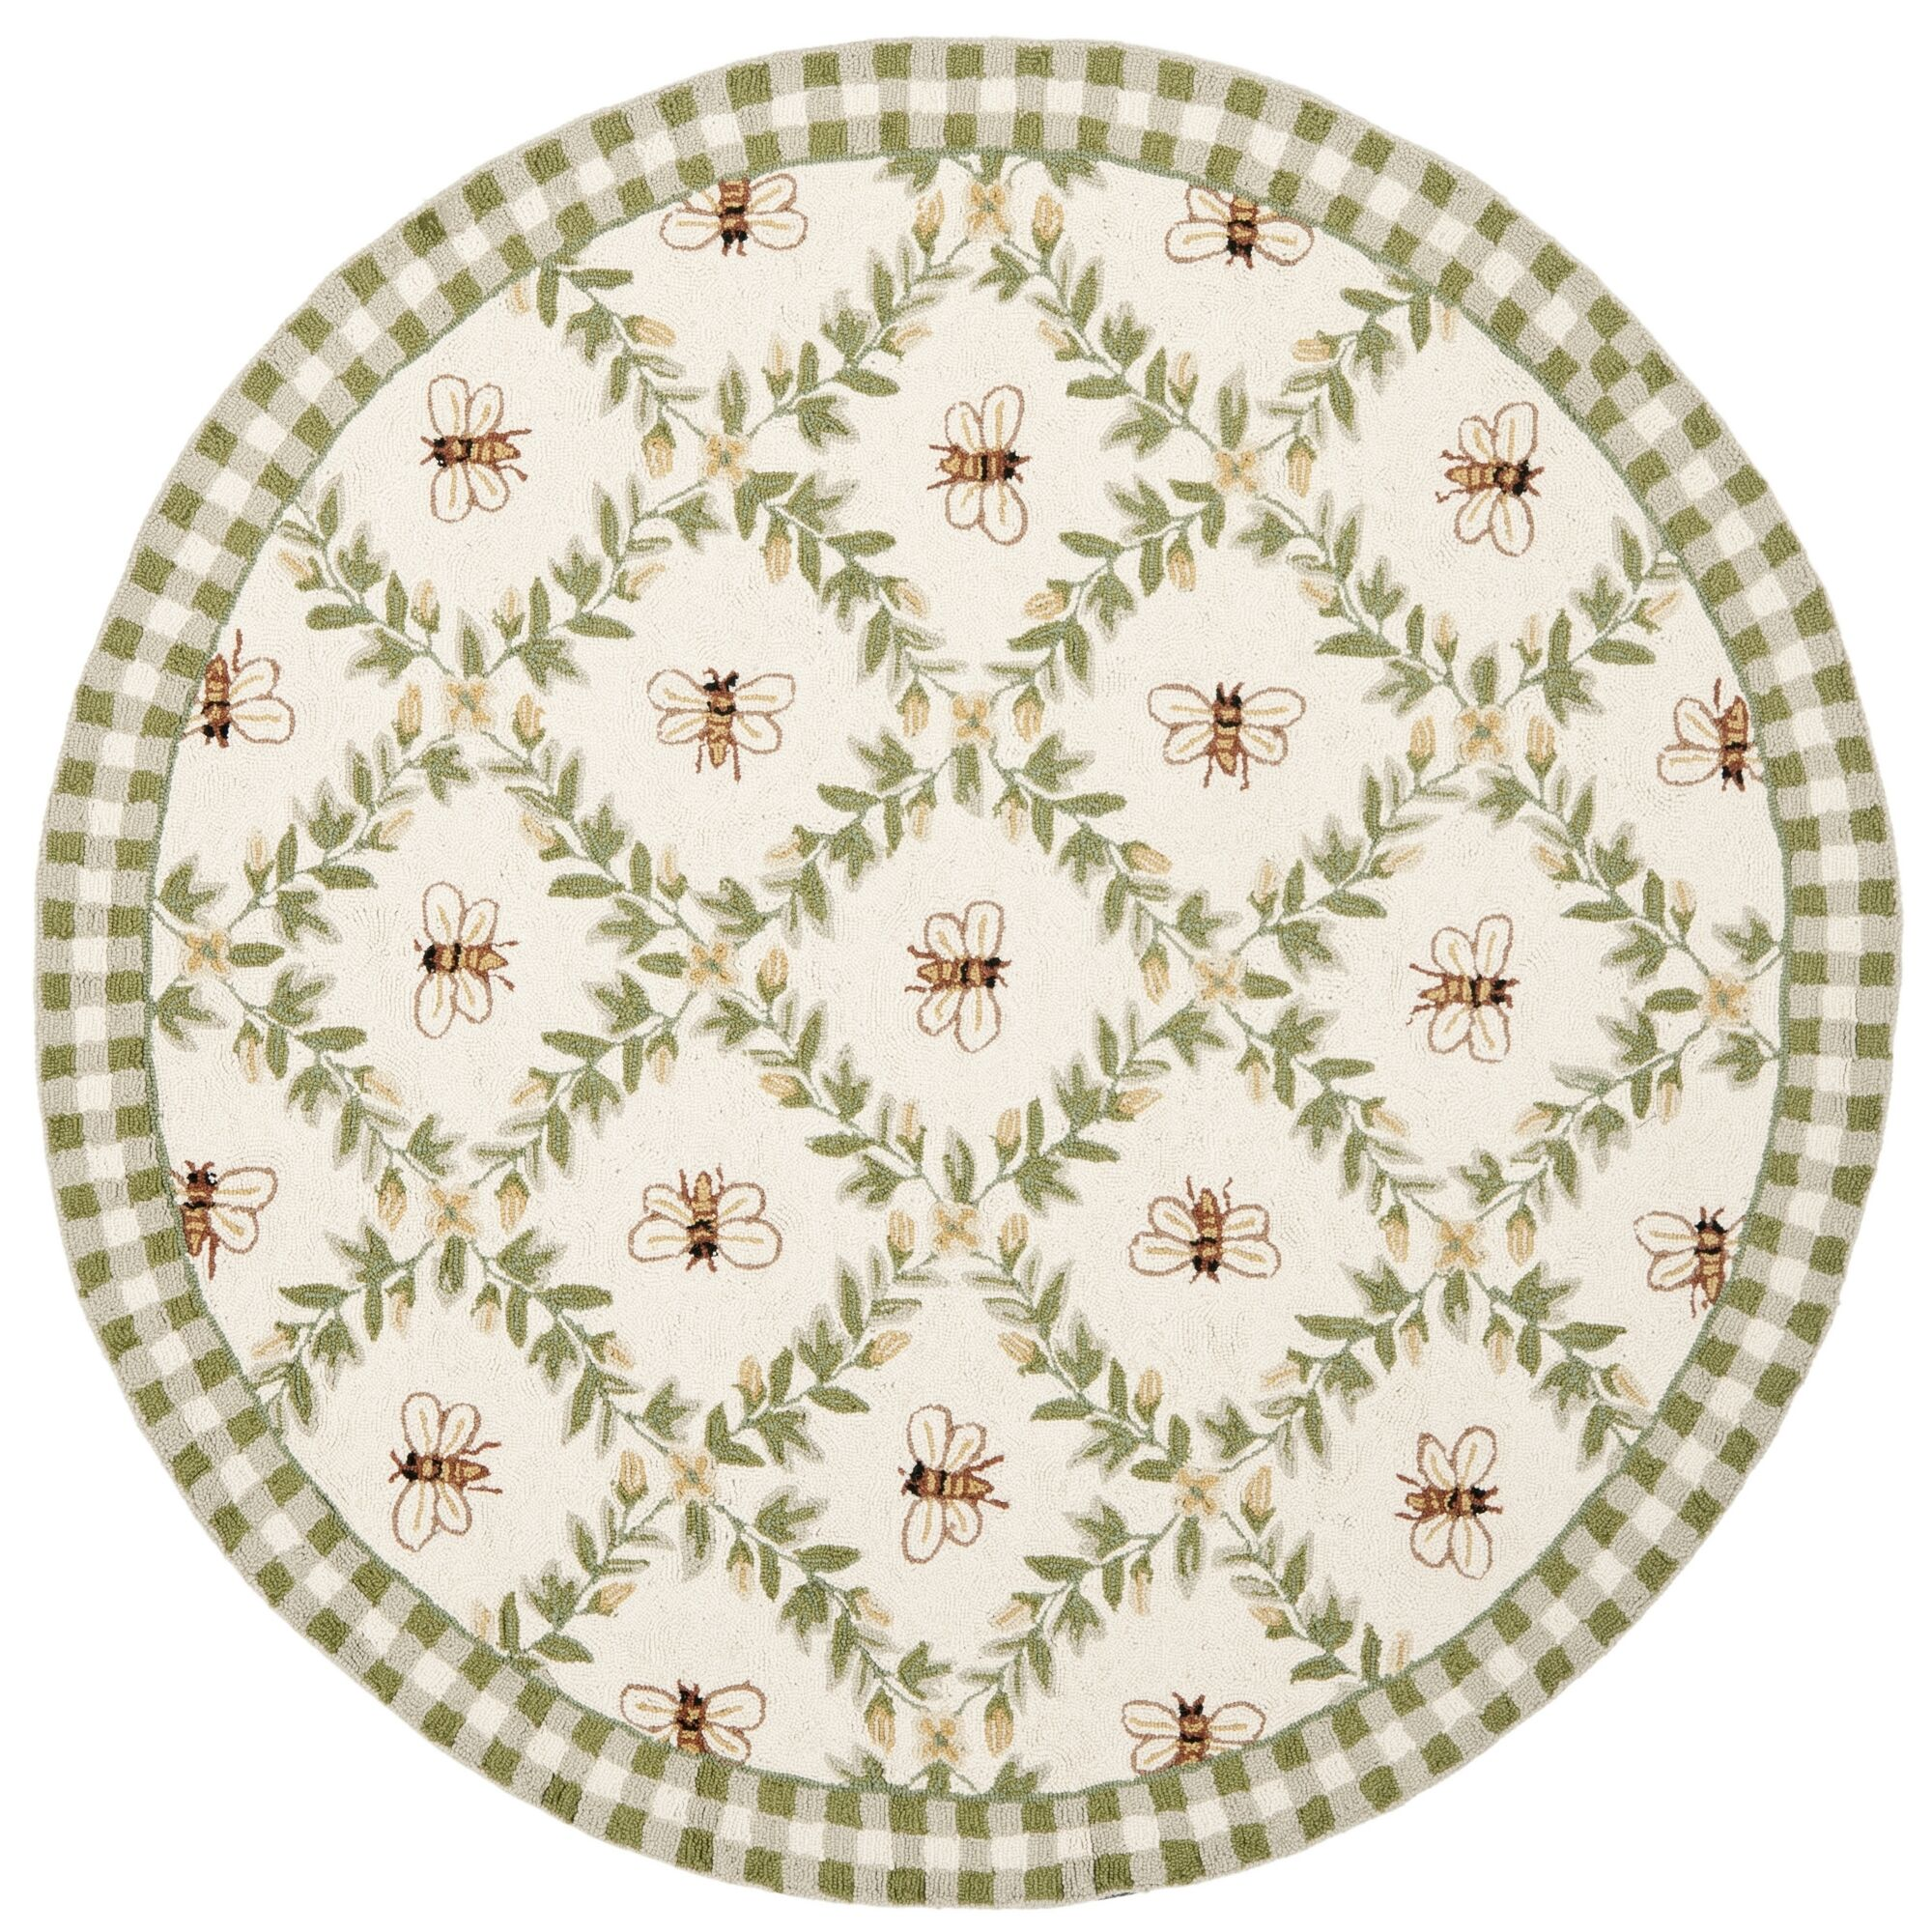 Littell Ivory/Green Bumblebee Area Rug Rug Size: Round 8'